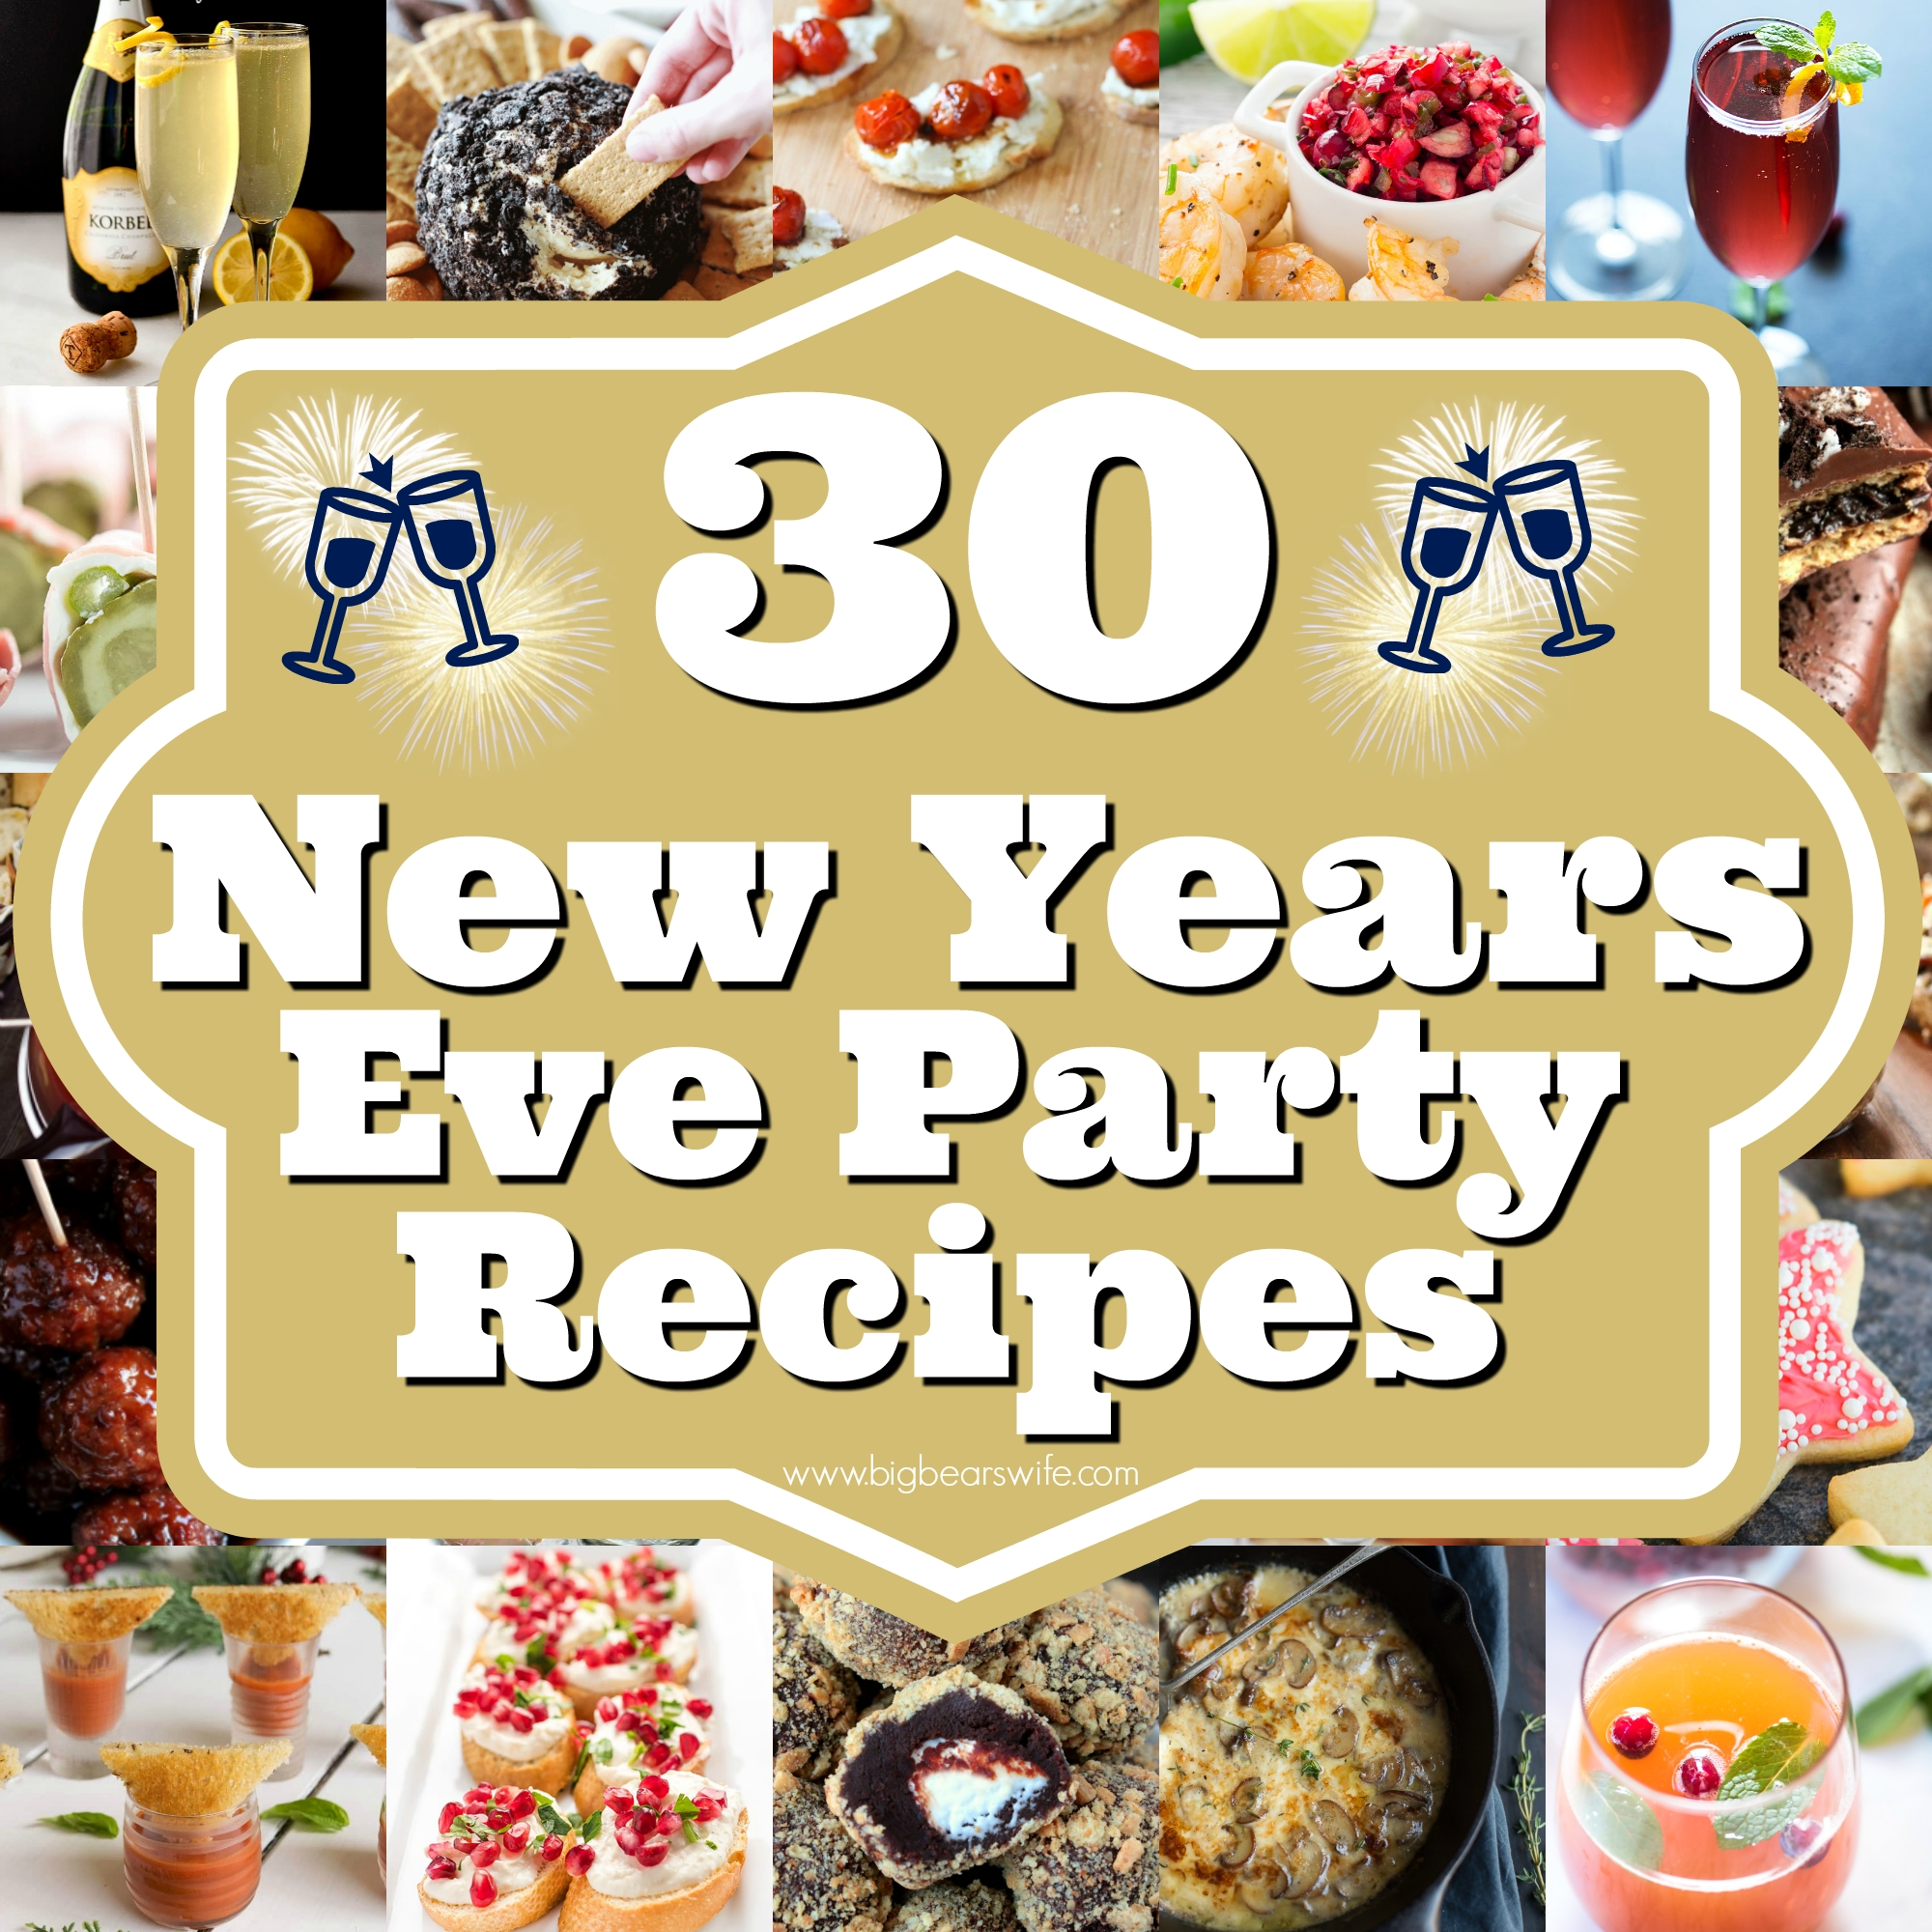 10 Spectacular New Years Eve Party Food Ideas 30 new years eve party recipes savory ideas sweets and cocktails 3